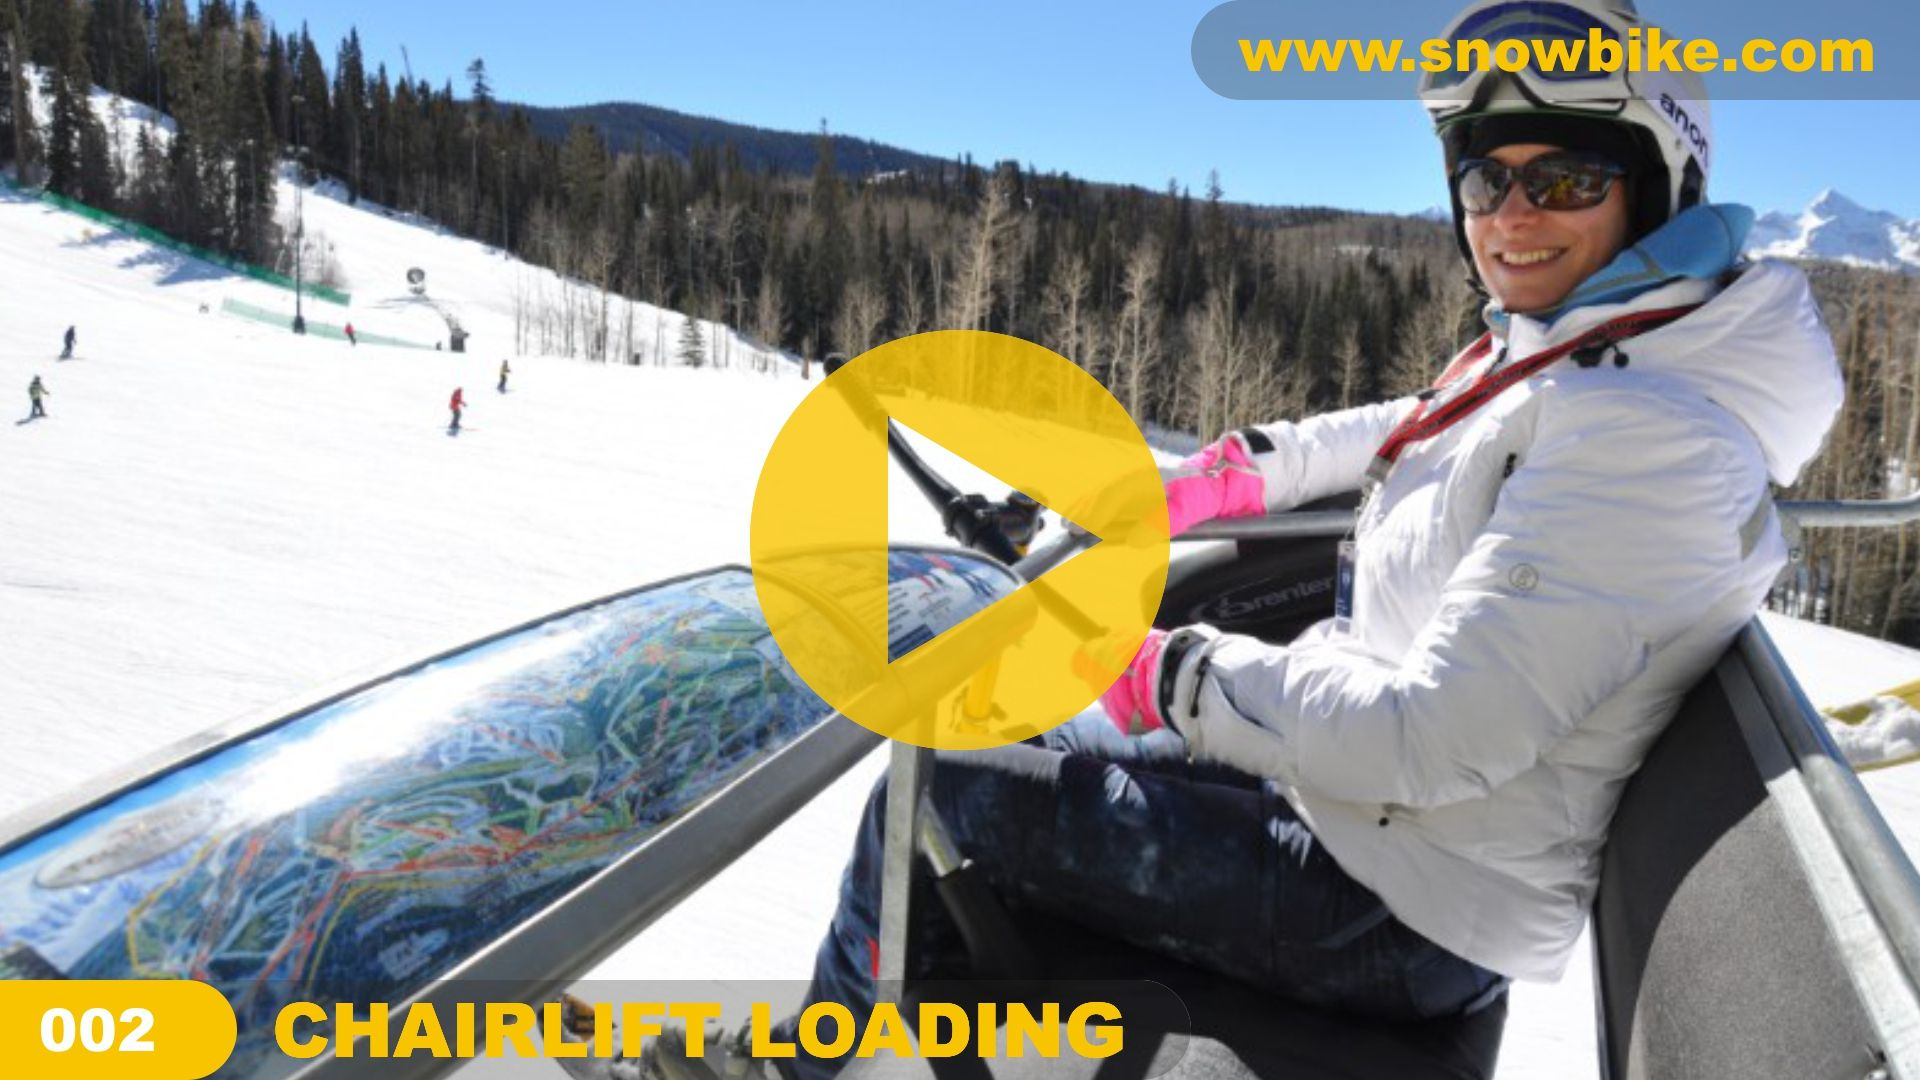 snowbike-basics-chairlift-loading-procedure-cover0DE40C3D-4BBE-5ED0-7CC6-4B57E83C9F41.jpg